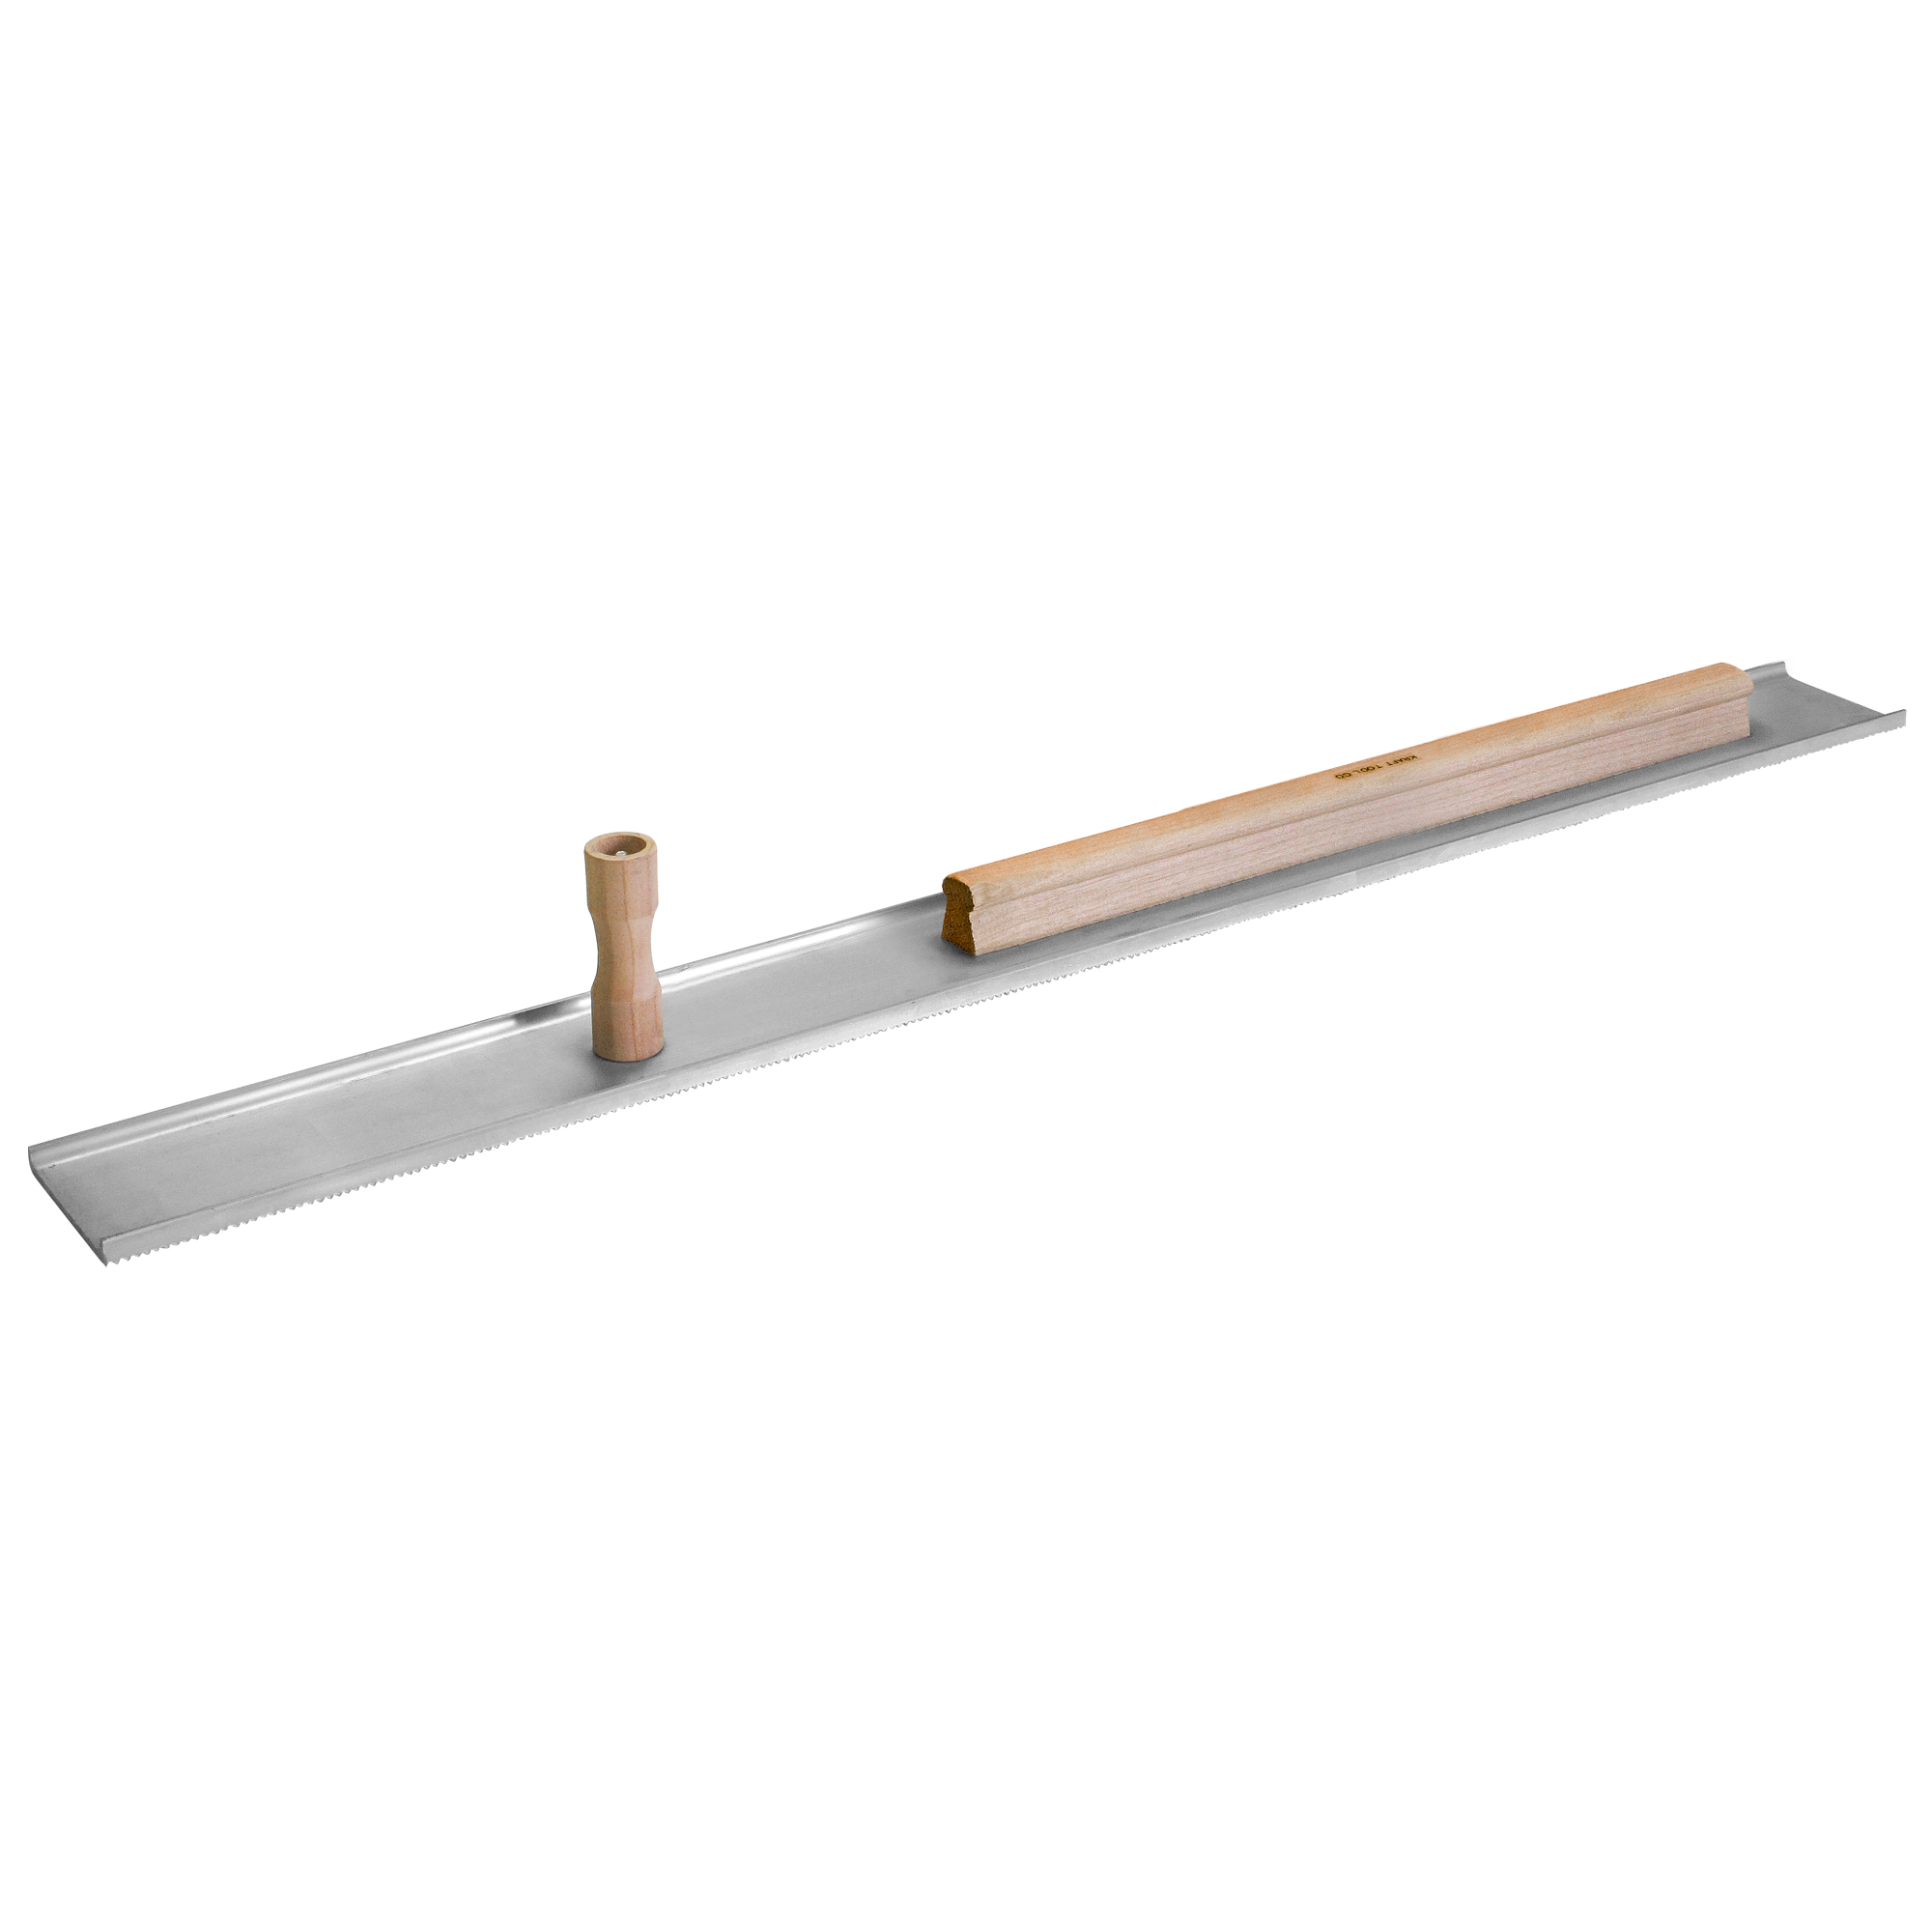 48inch Smooth Edge Magnesium Darby With 24inch Handle - Pl401-24 - Measuring & Sensors Tools Drywall Plastering Darbies PL401-24